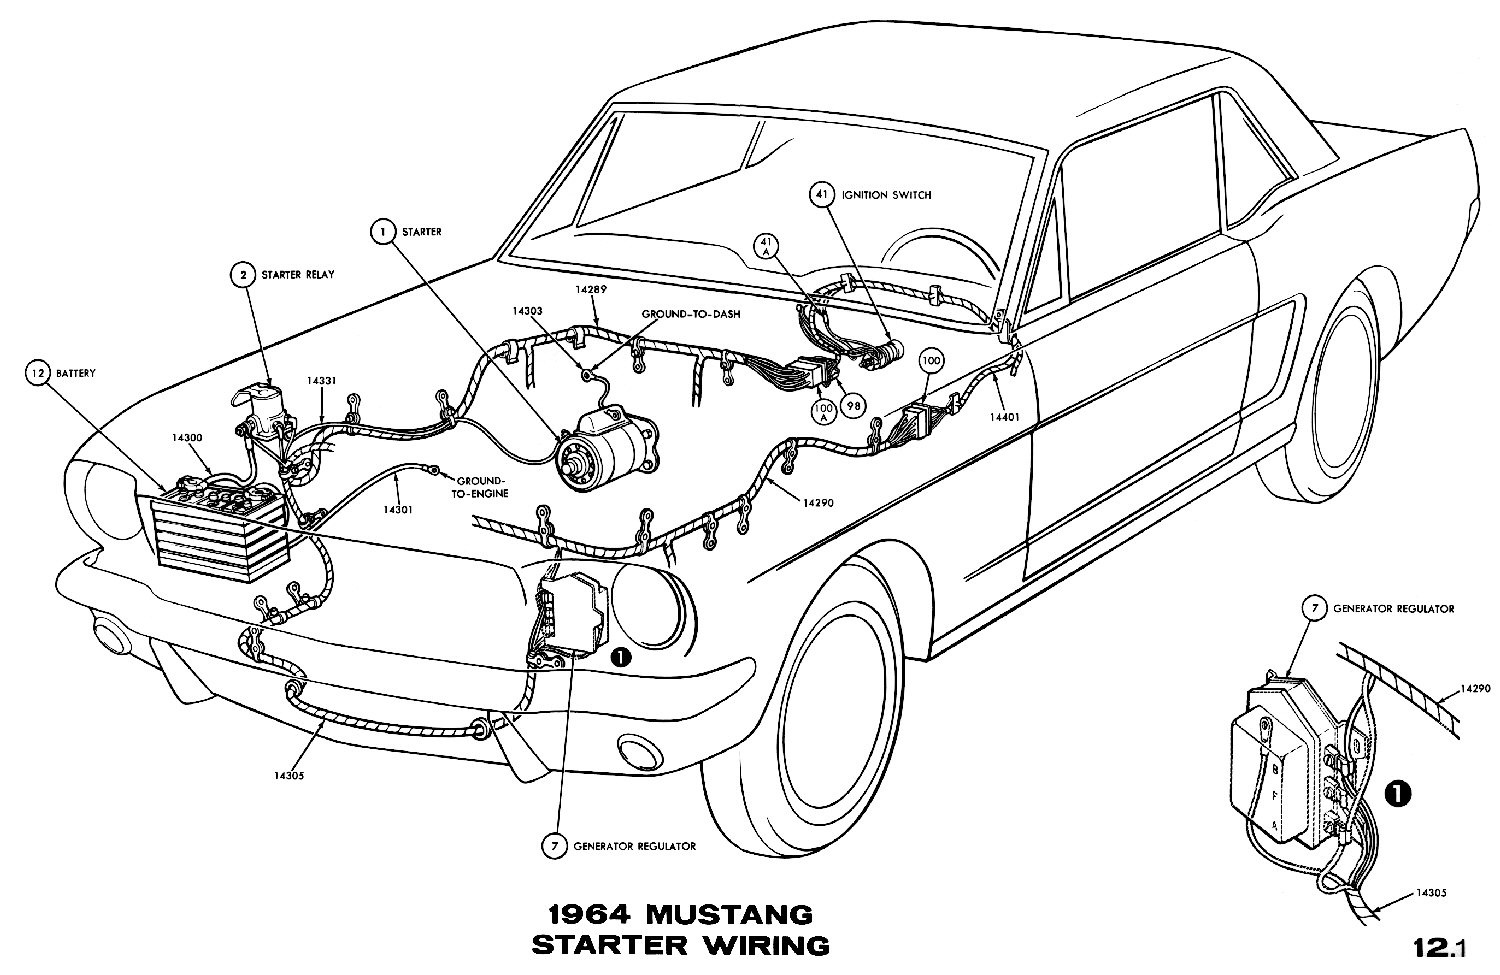 1964 Mustang Wiring Diagrams Average Joe Restoration Ford Starter Schematic Sm1964d Pictorial Or